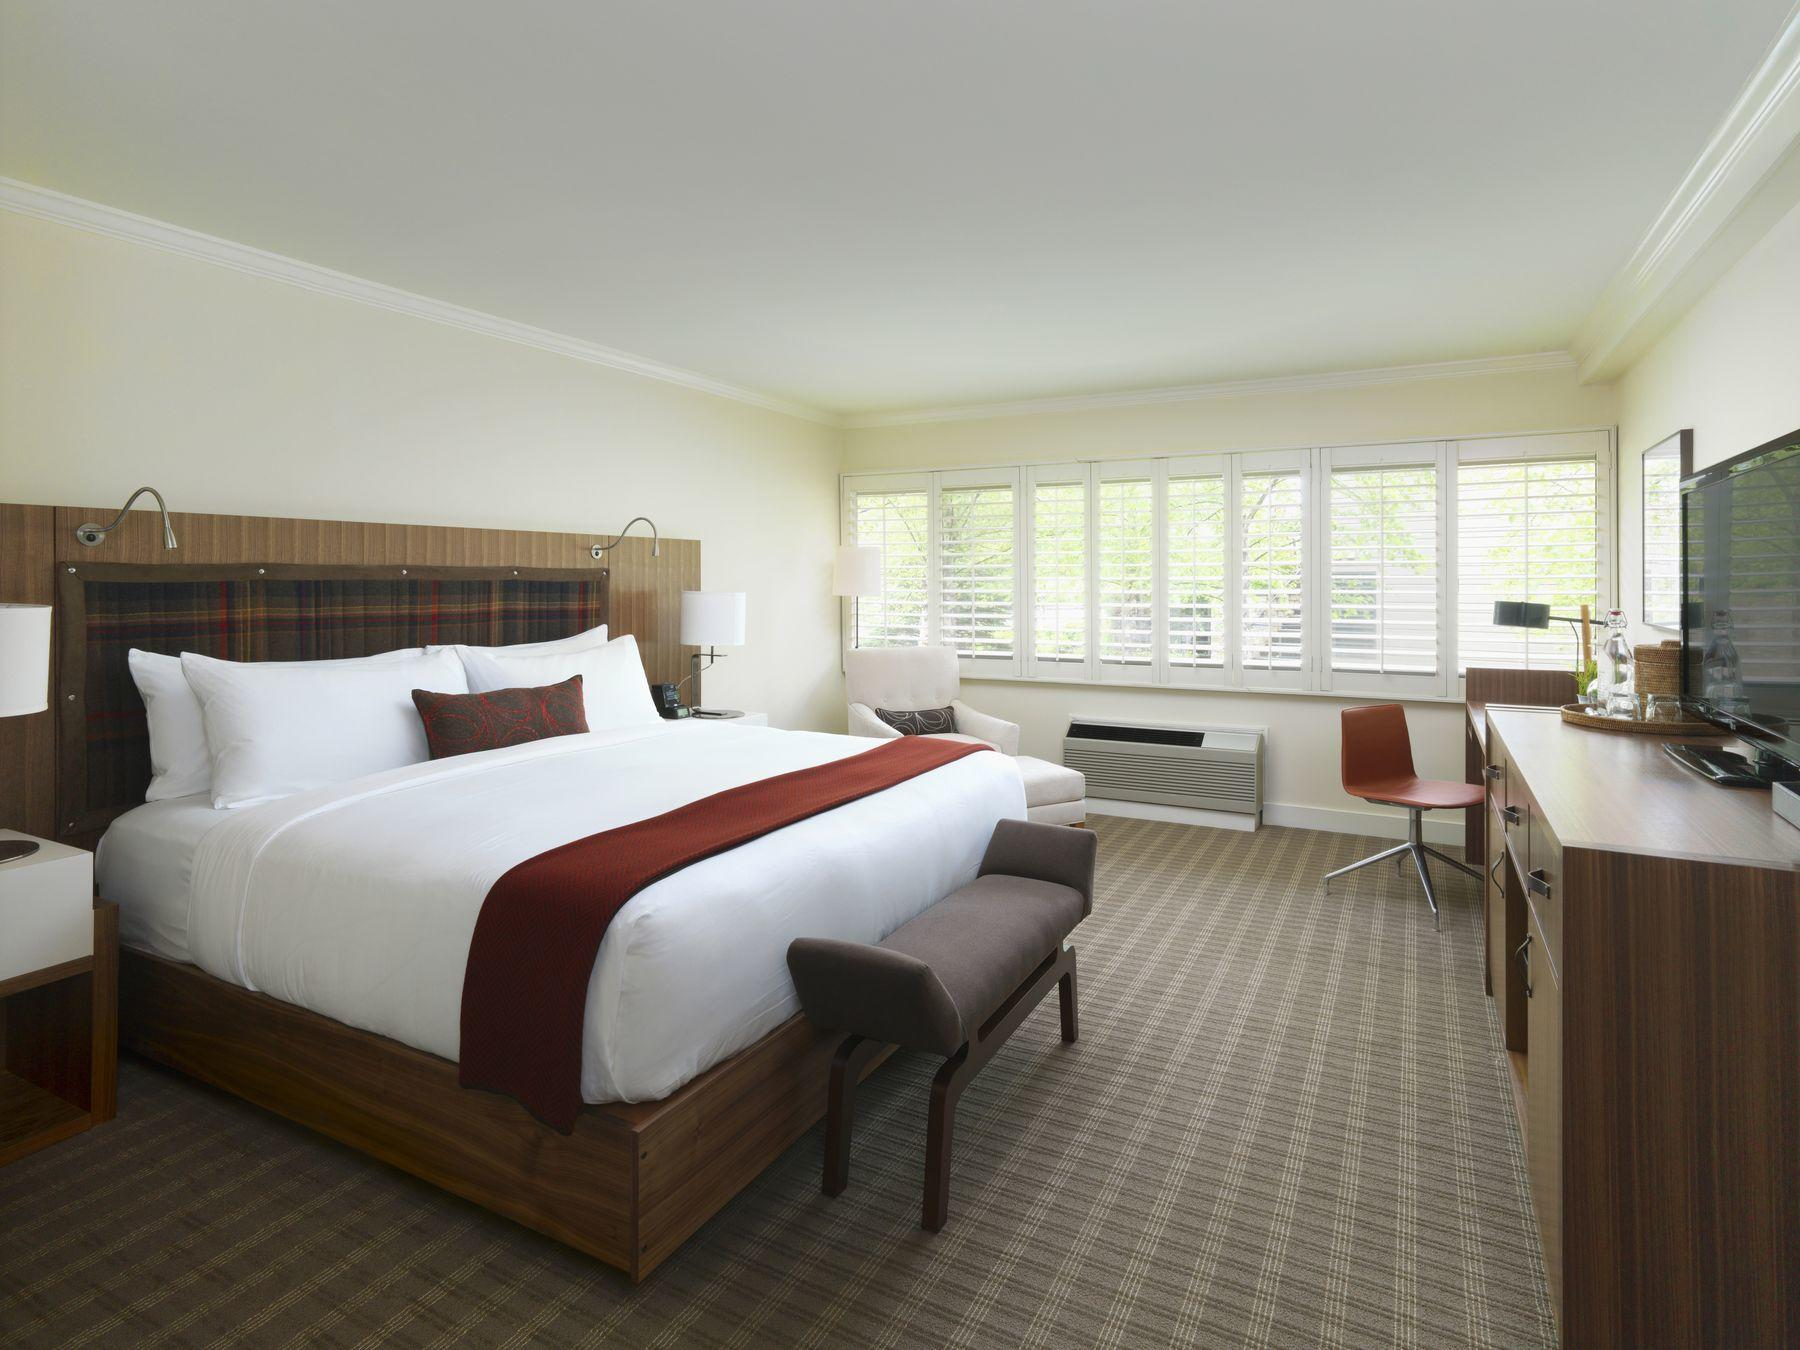 Deluxe hotel room with king bed